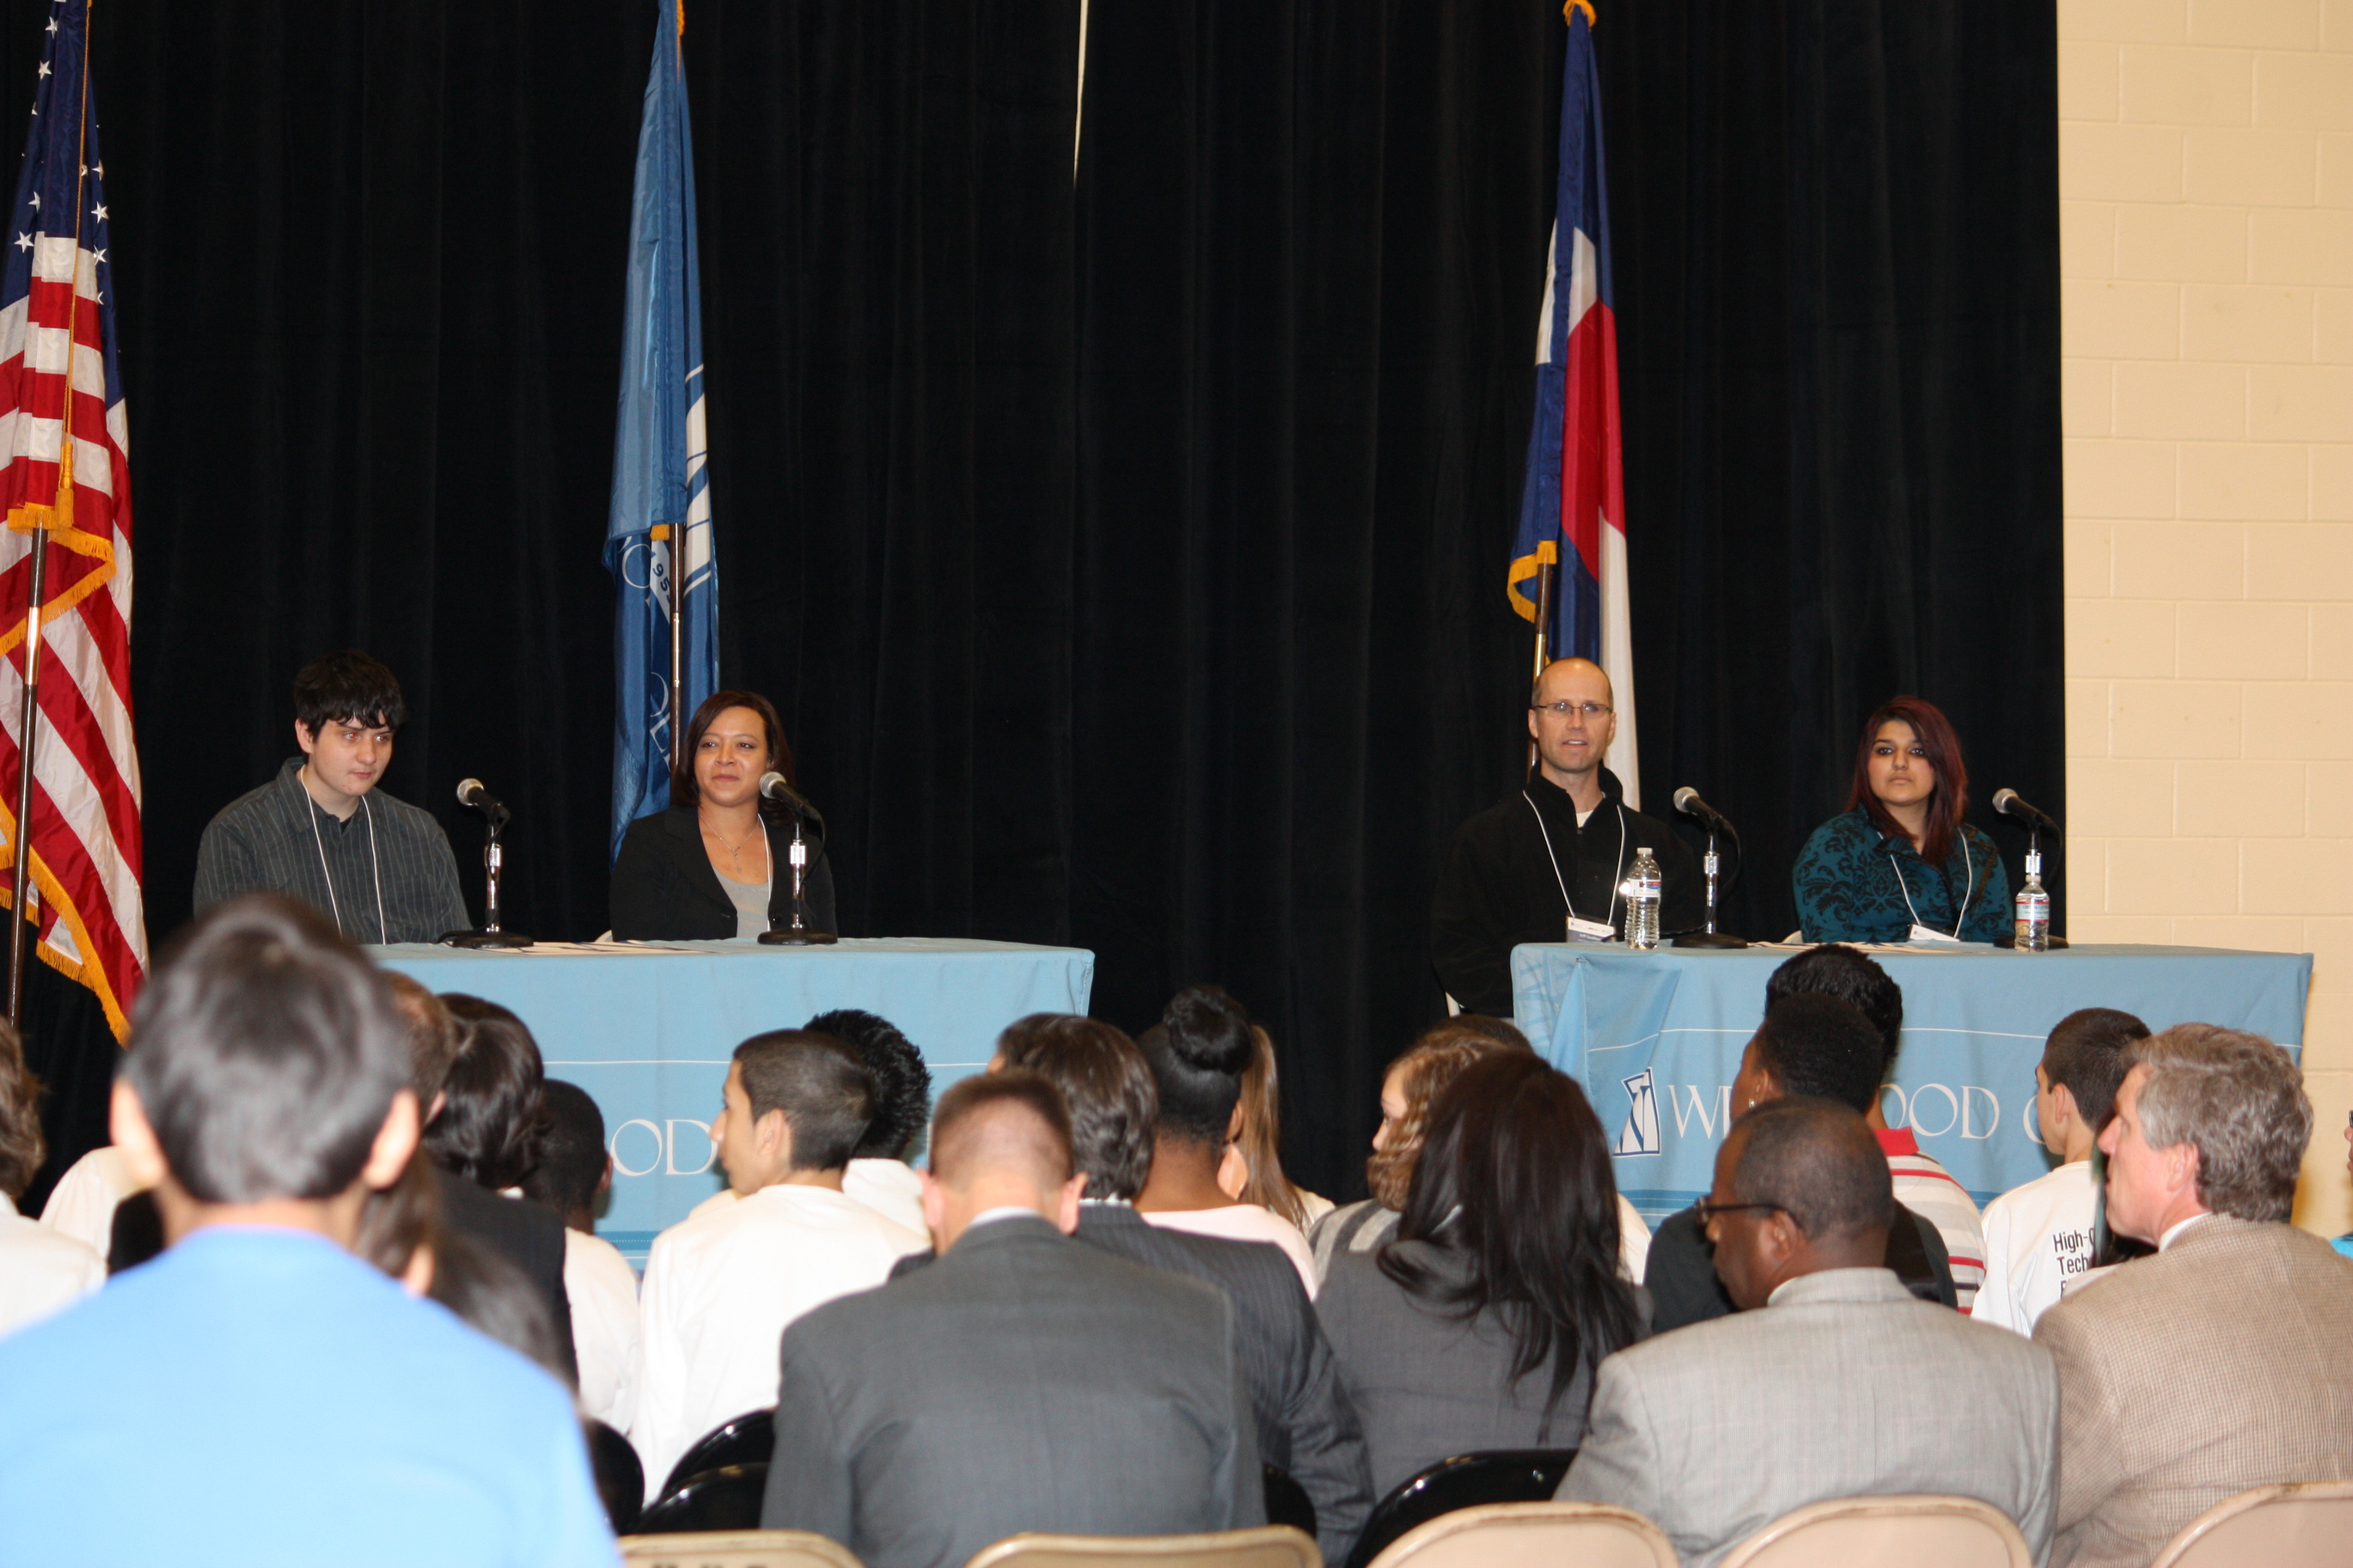 The event featured a student panel discussion including DPS high school students and a Westwood College student and alumni who have chosen to focus their education and careers in technology. Photo by Angela McGurk